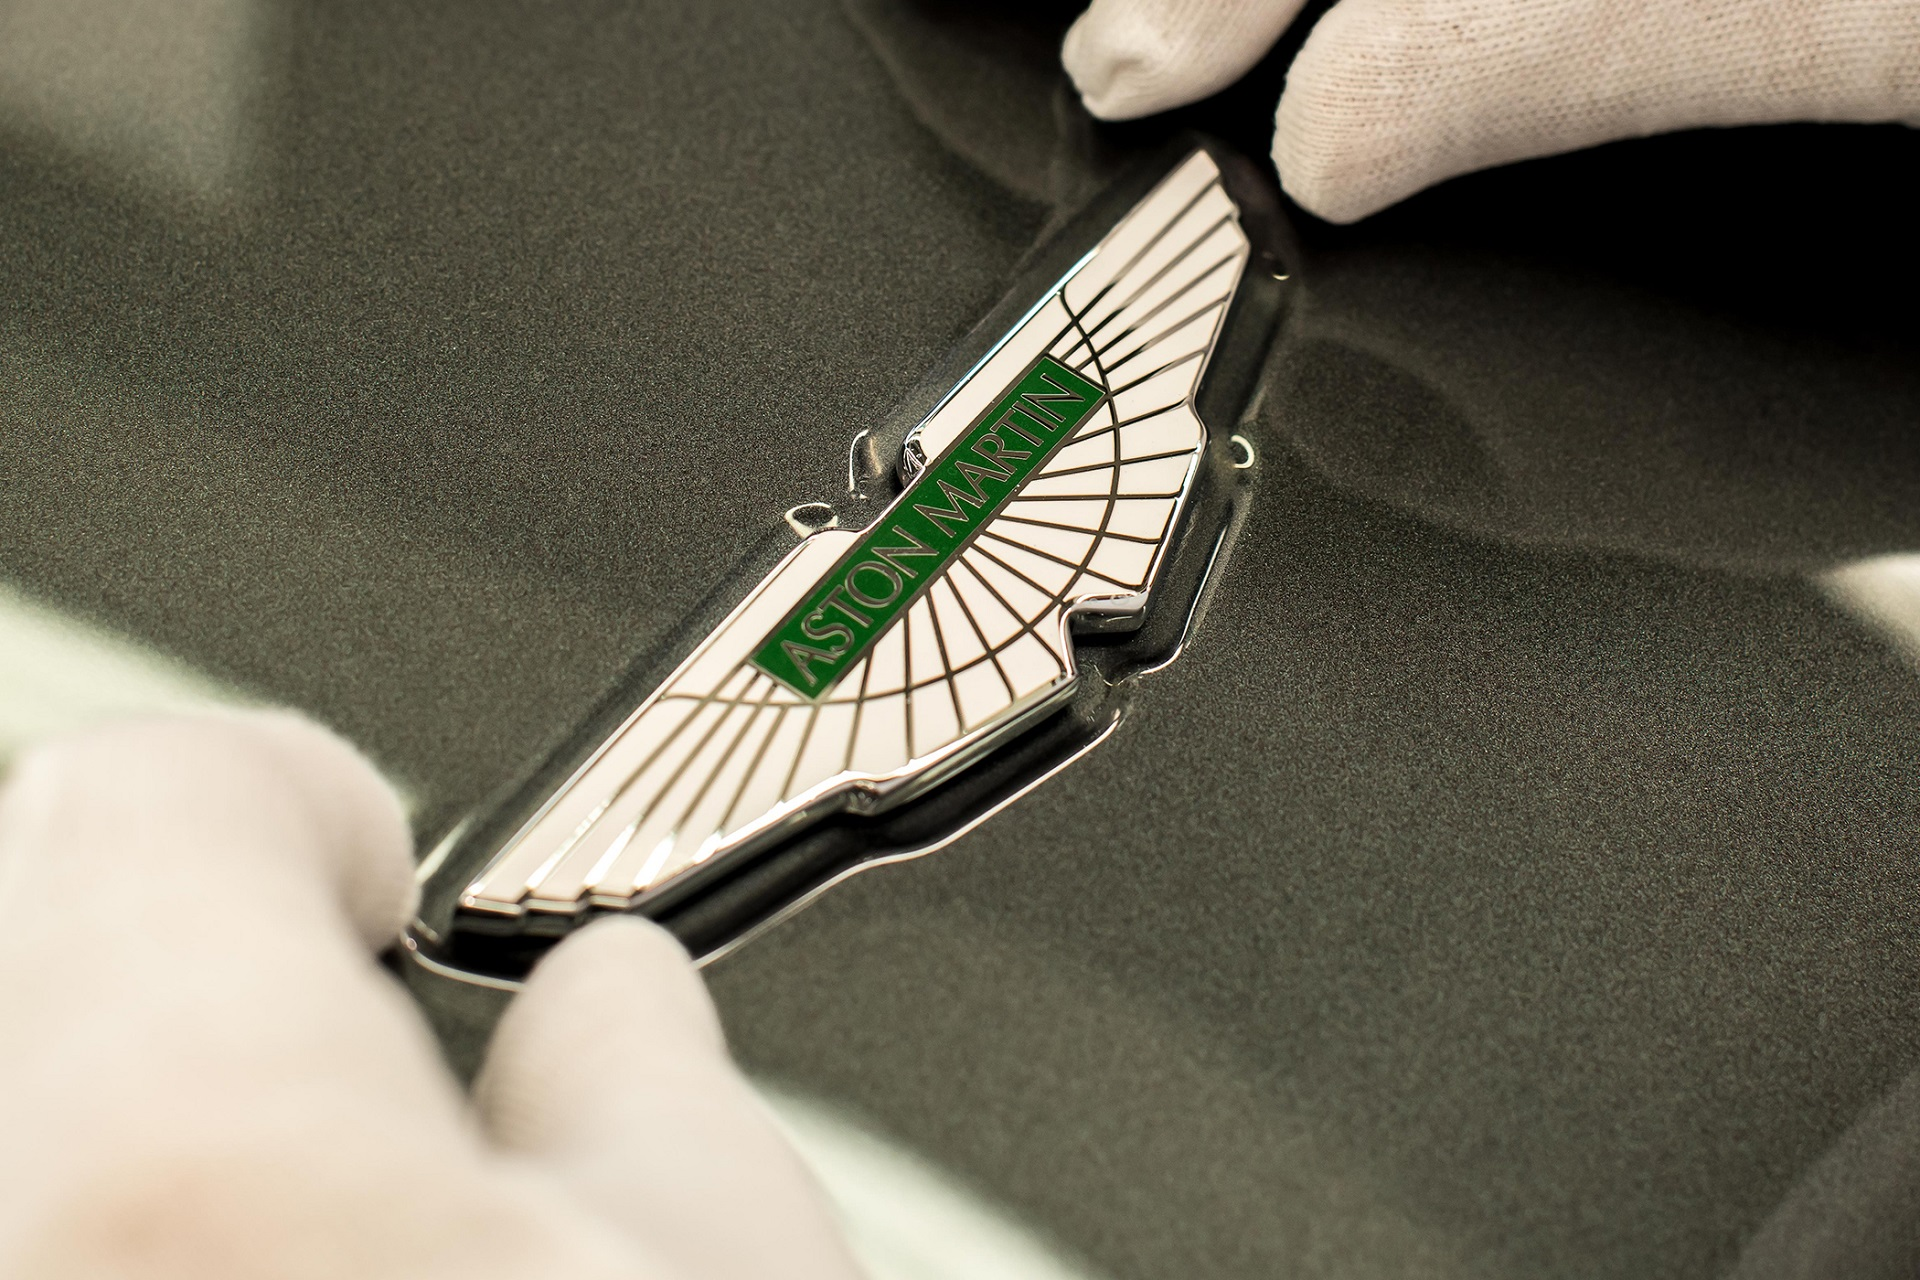 Aston Martin Wings badge being placed on to vehicle